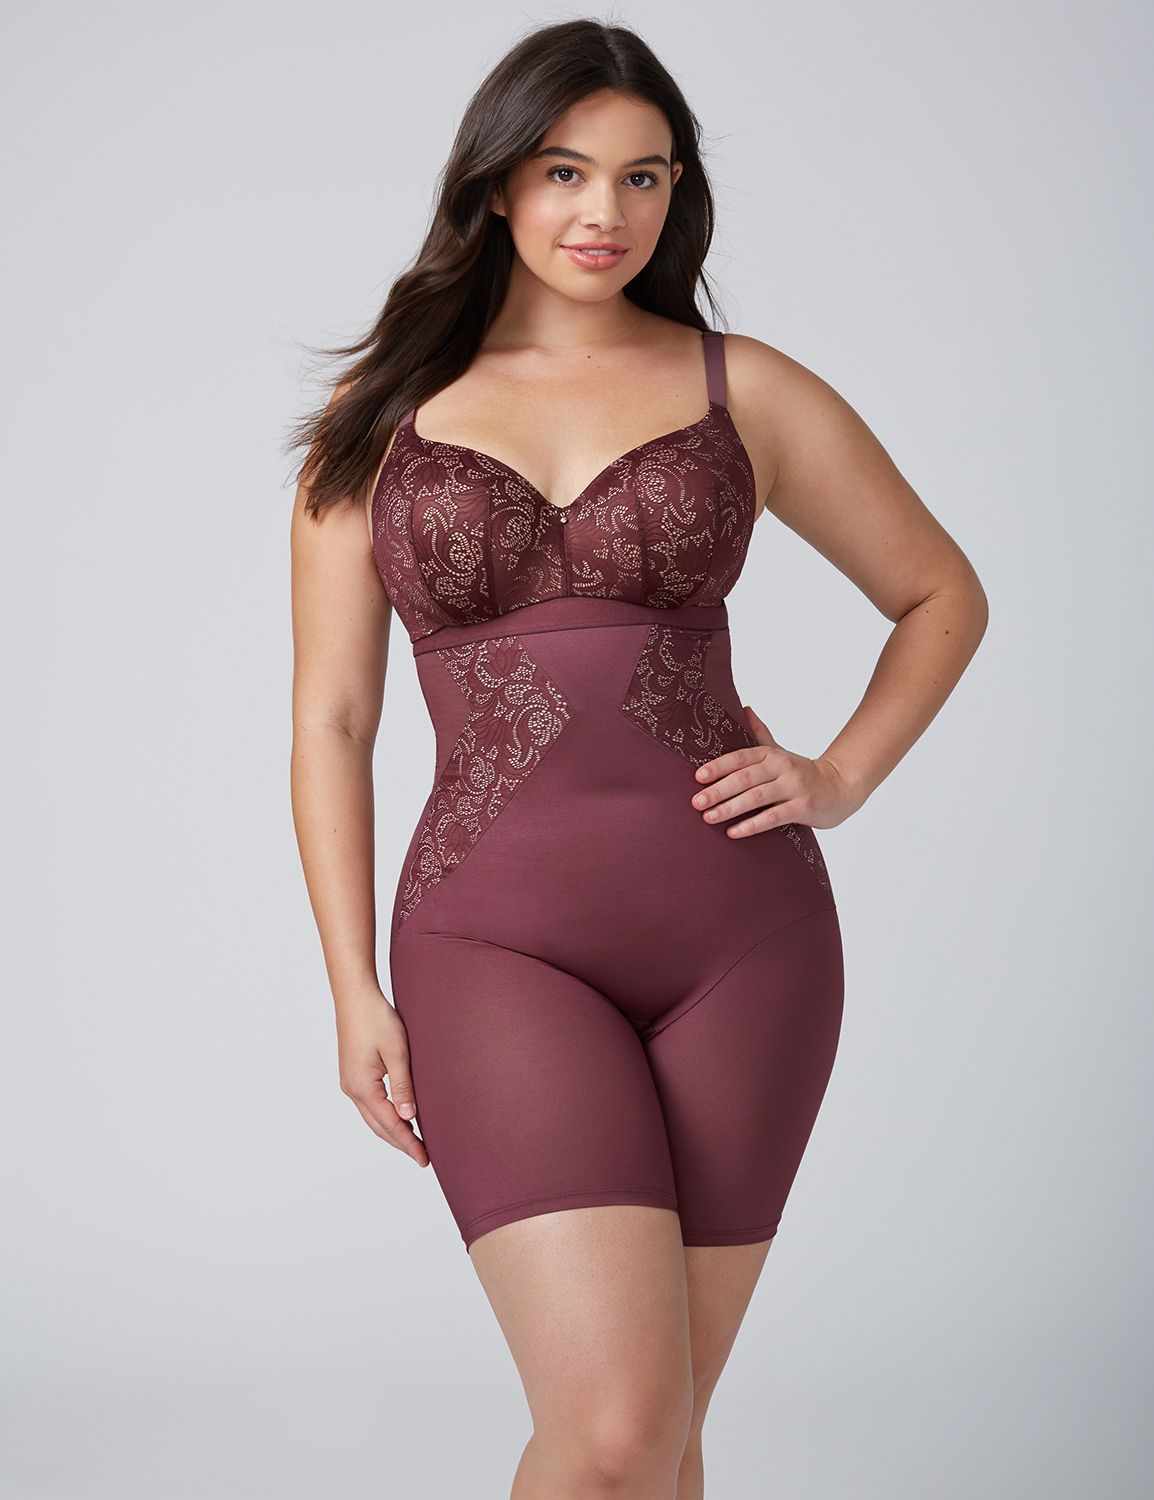 6c7abafbbda Shape by Cacique Illusion High-Waist Thigh Shaper with Lace ...